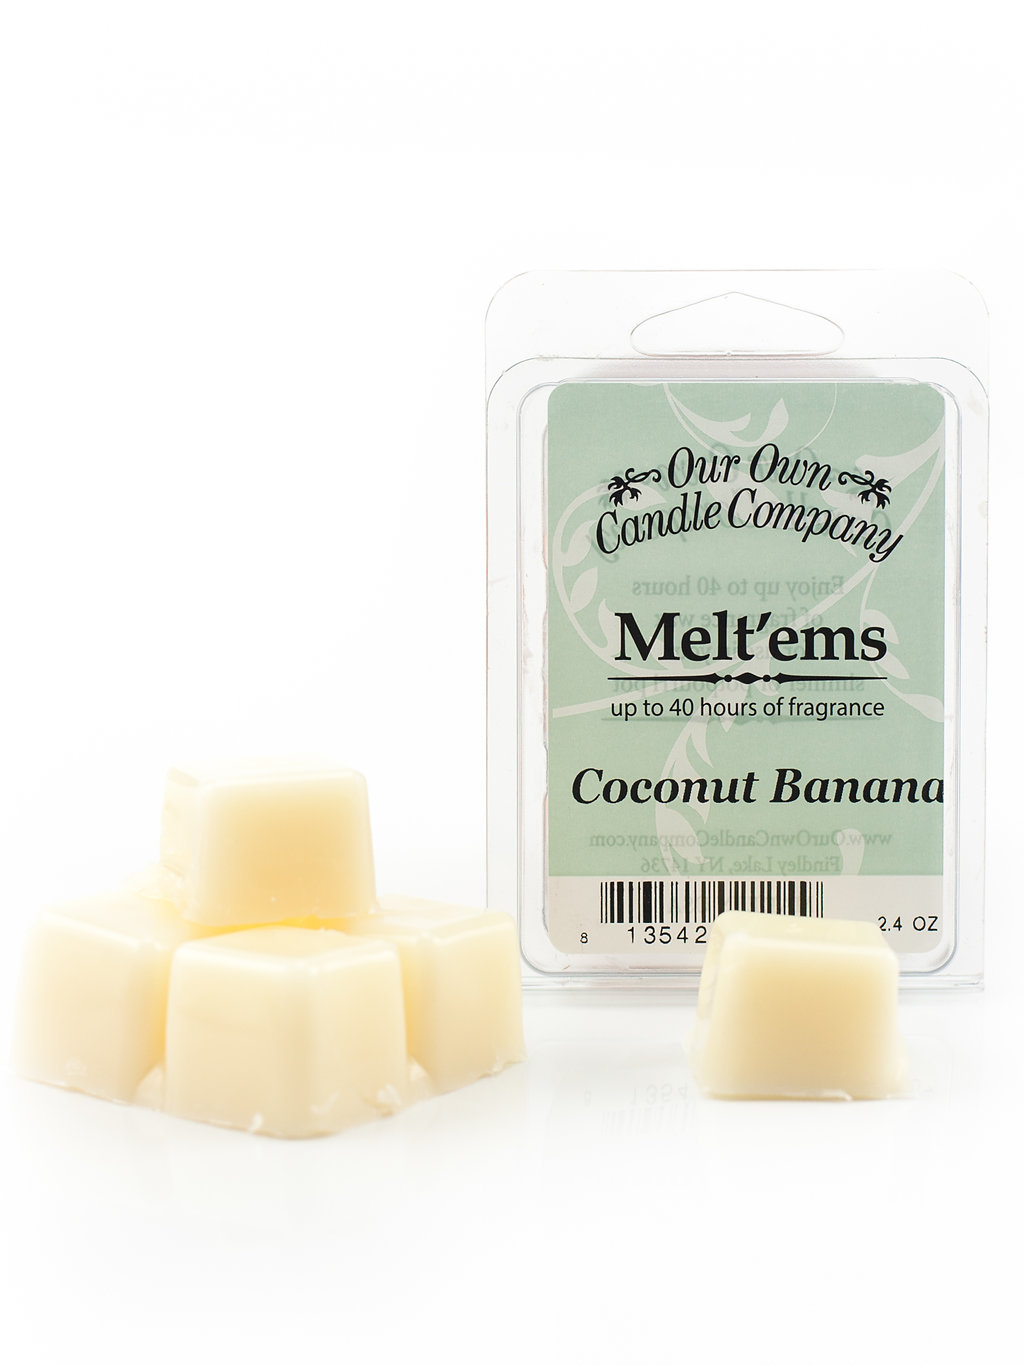 COCONUT BANANA MELT 6 CUBE 2.4 OZ UPC# 813542021149